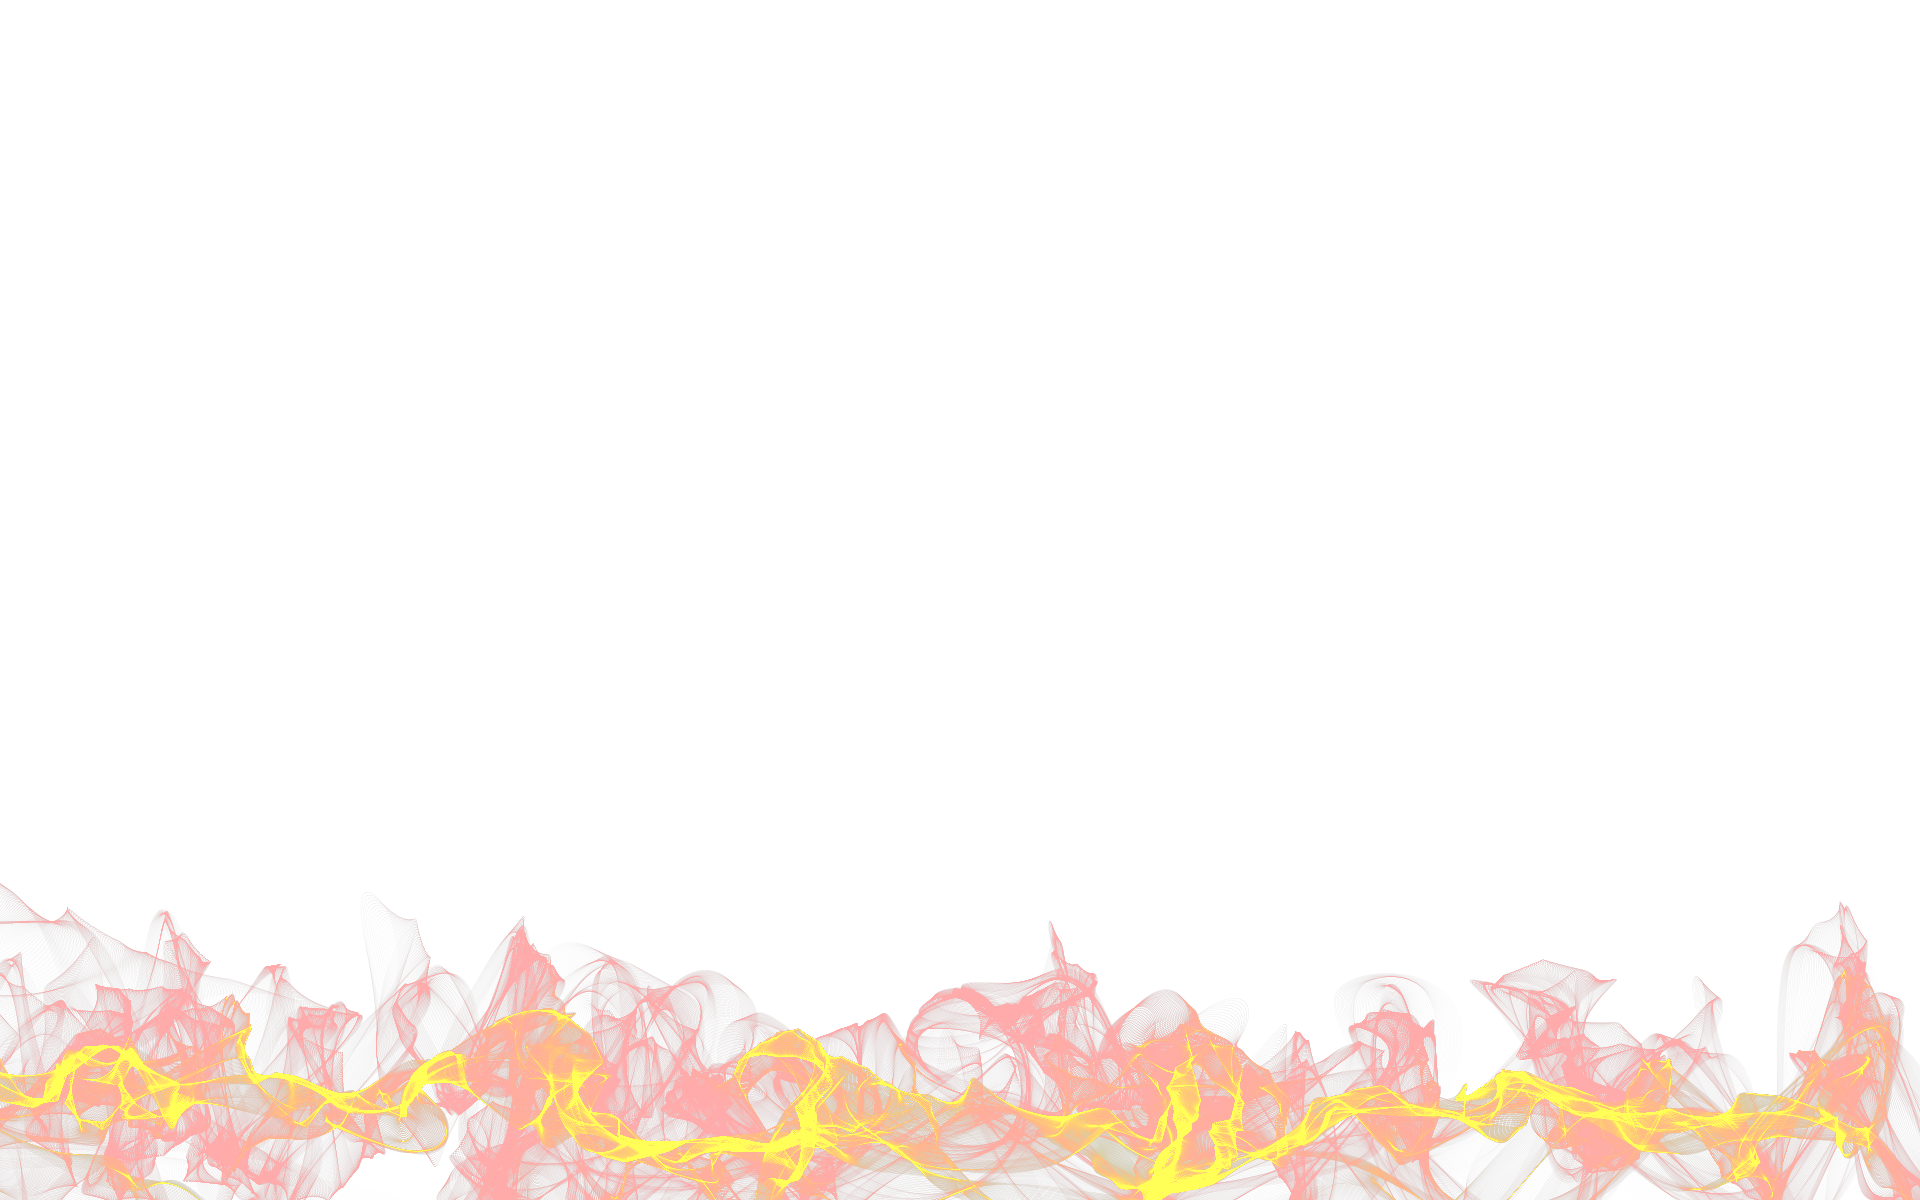 S fire png. Flame